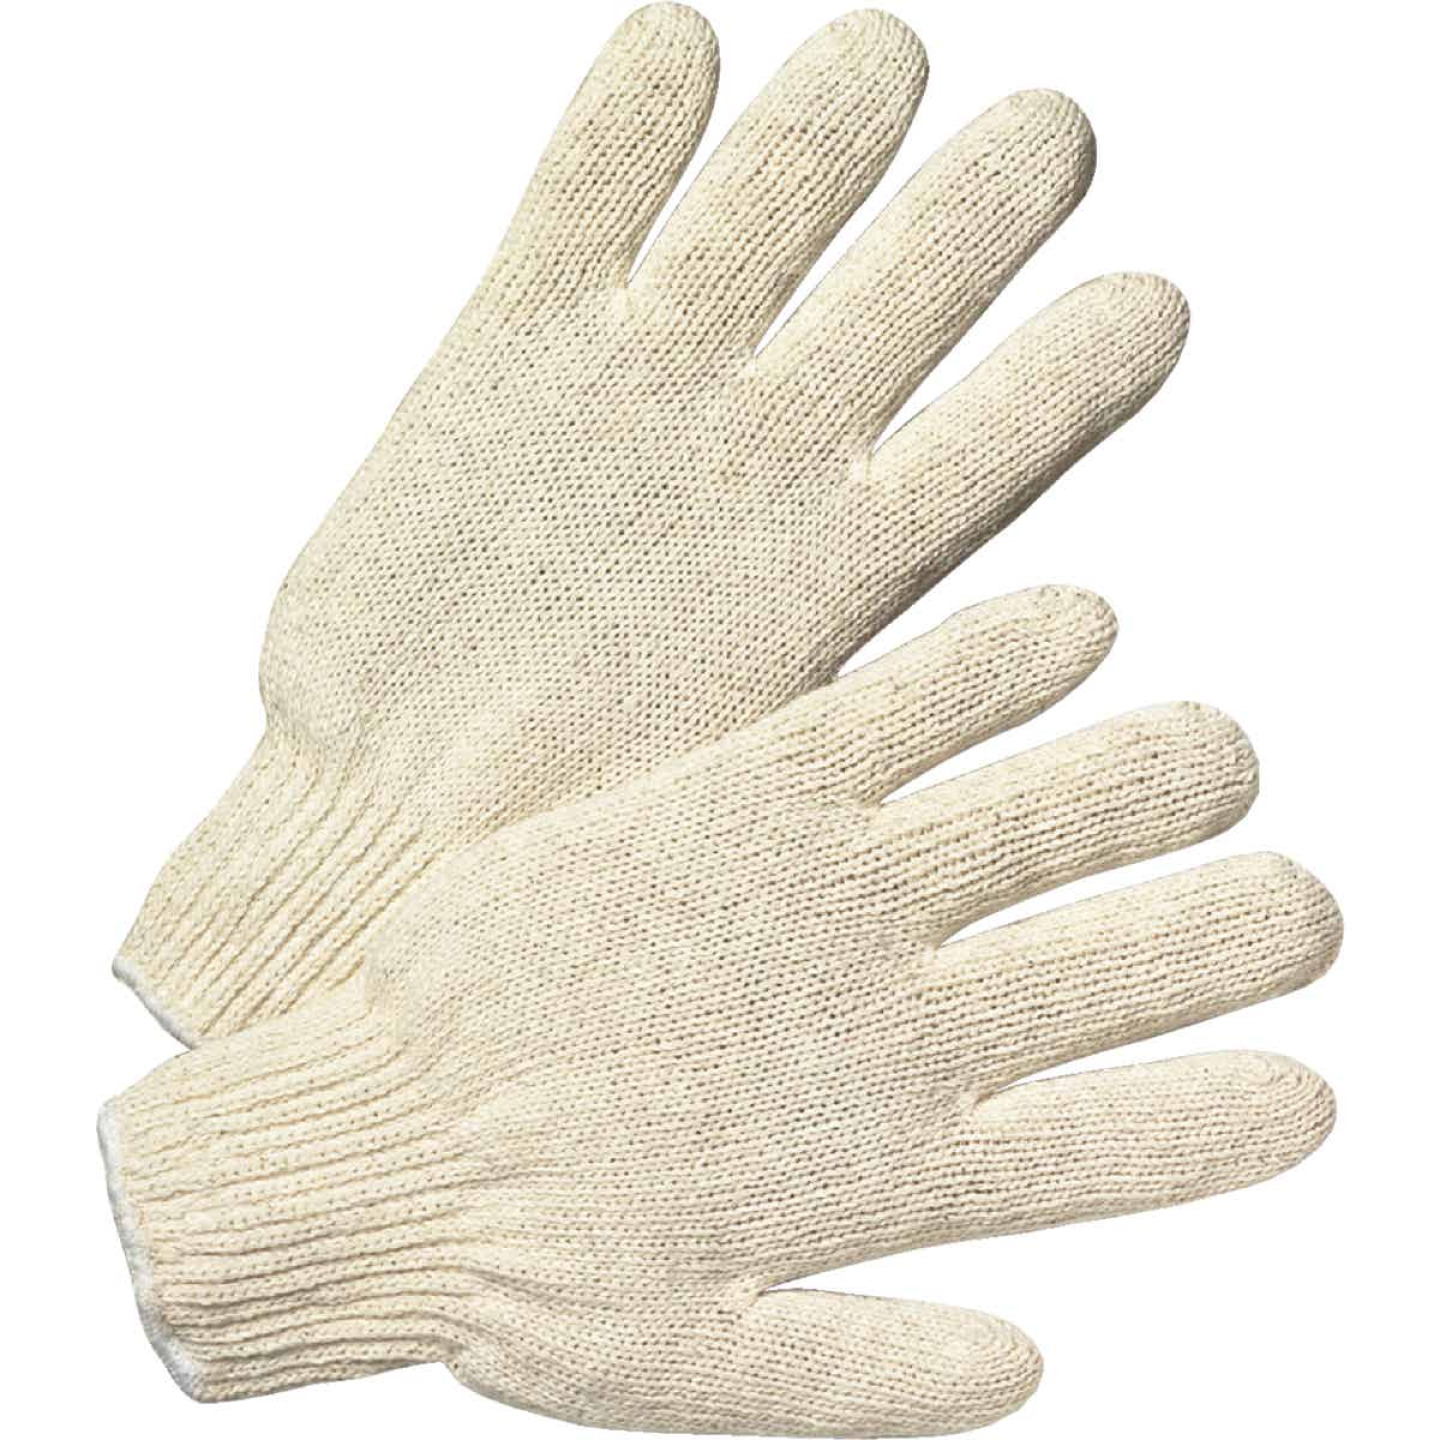 West Chester Protective Gear Men's Large Polyester Blend String Knit Work Glove, White (12-Pack) Image 1